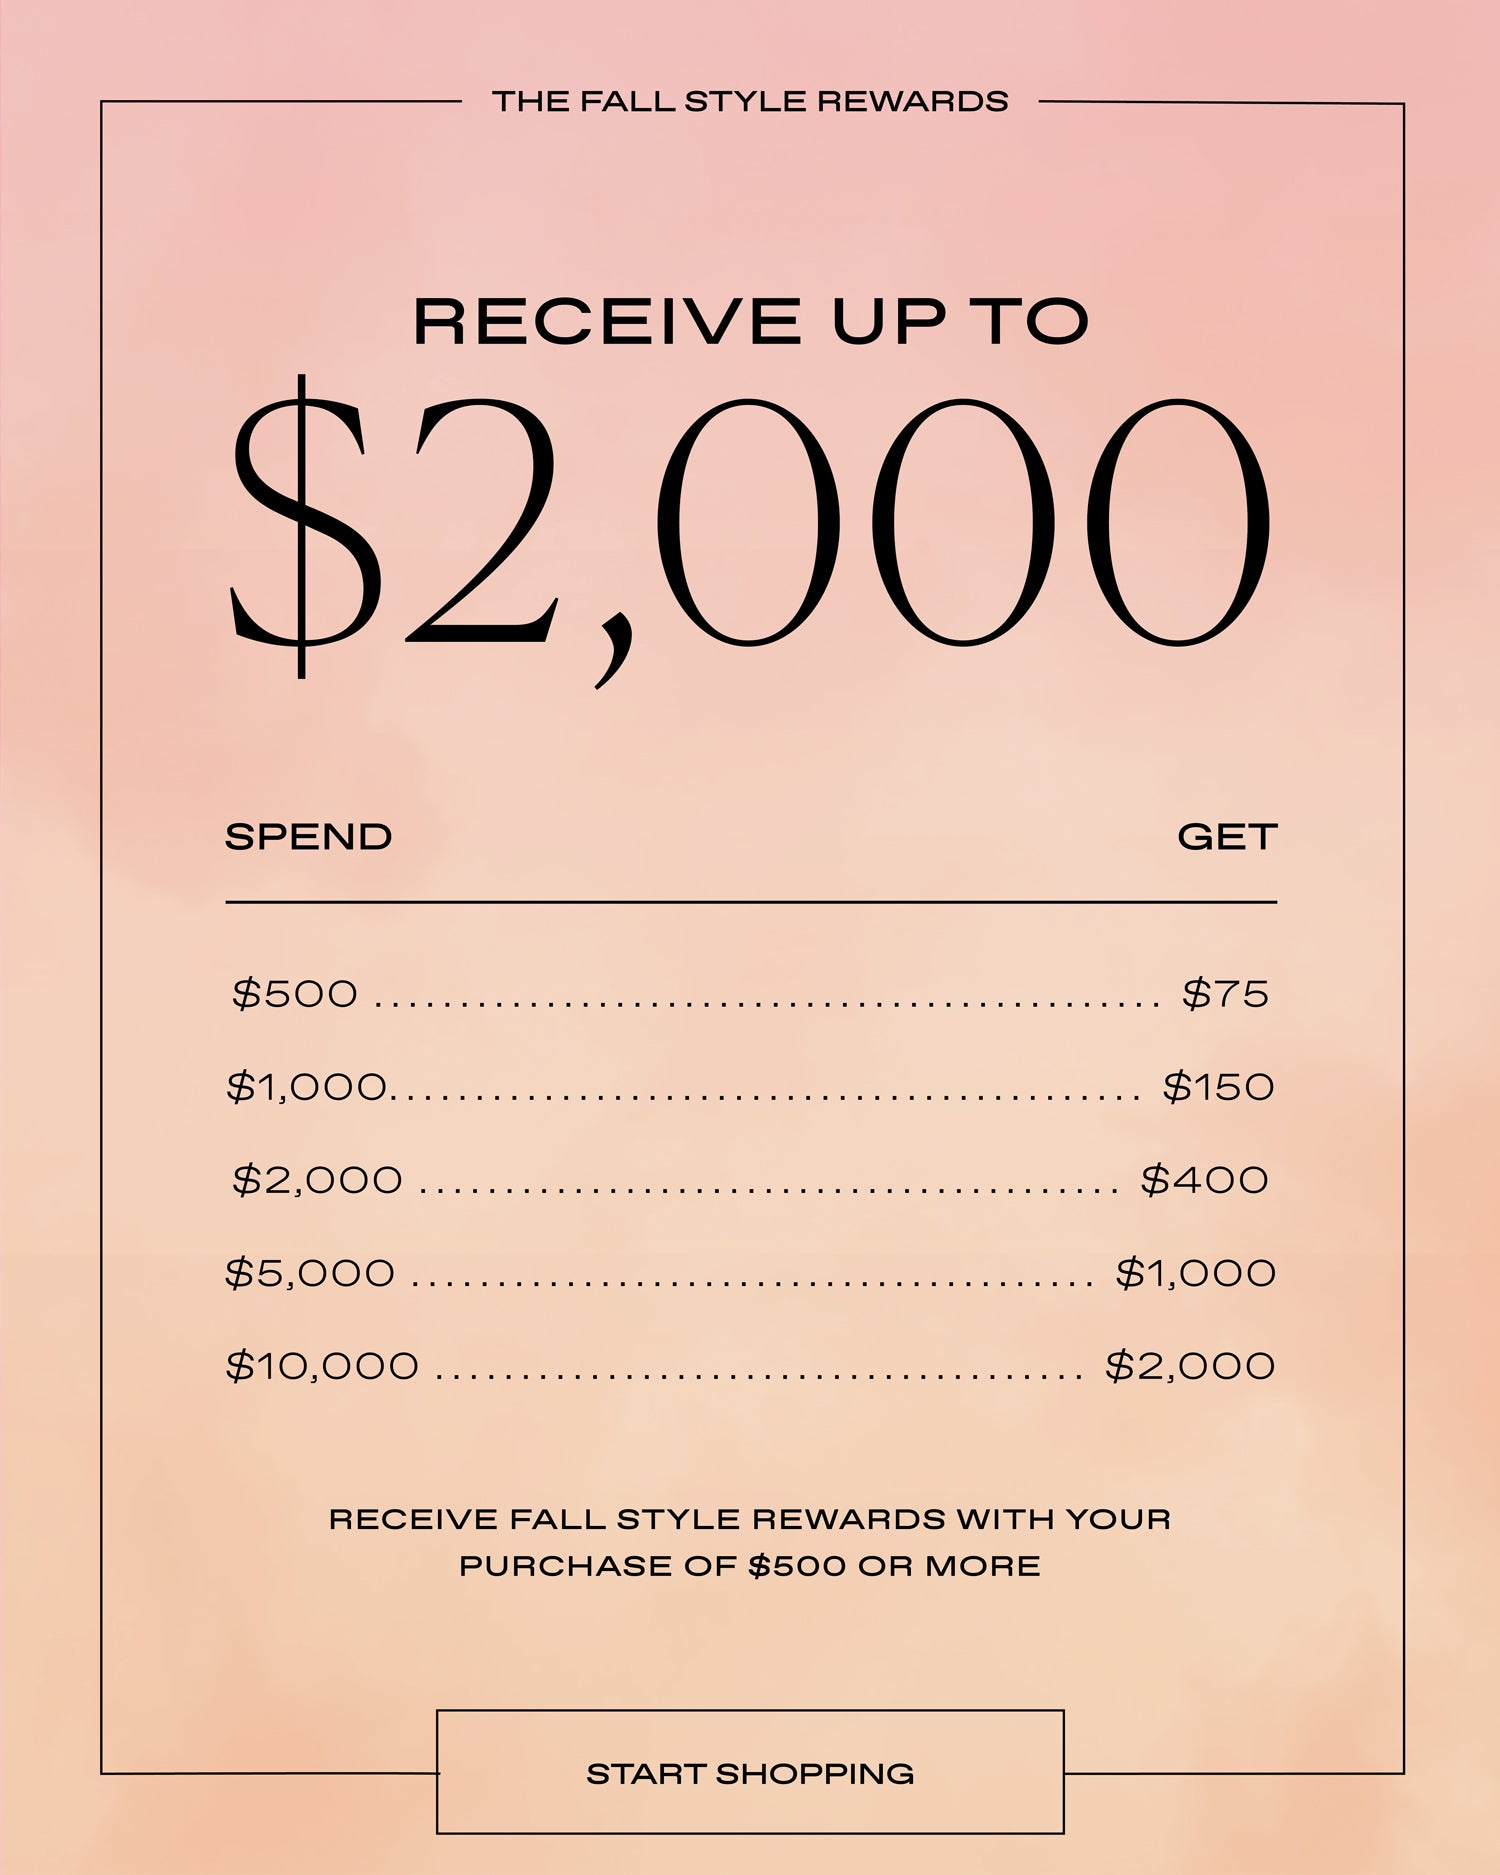 New Season, More Style: For every $100 spent in February, receive $25 toward a purchase in April